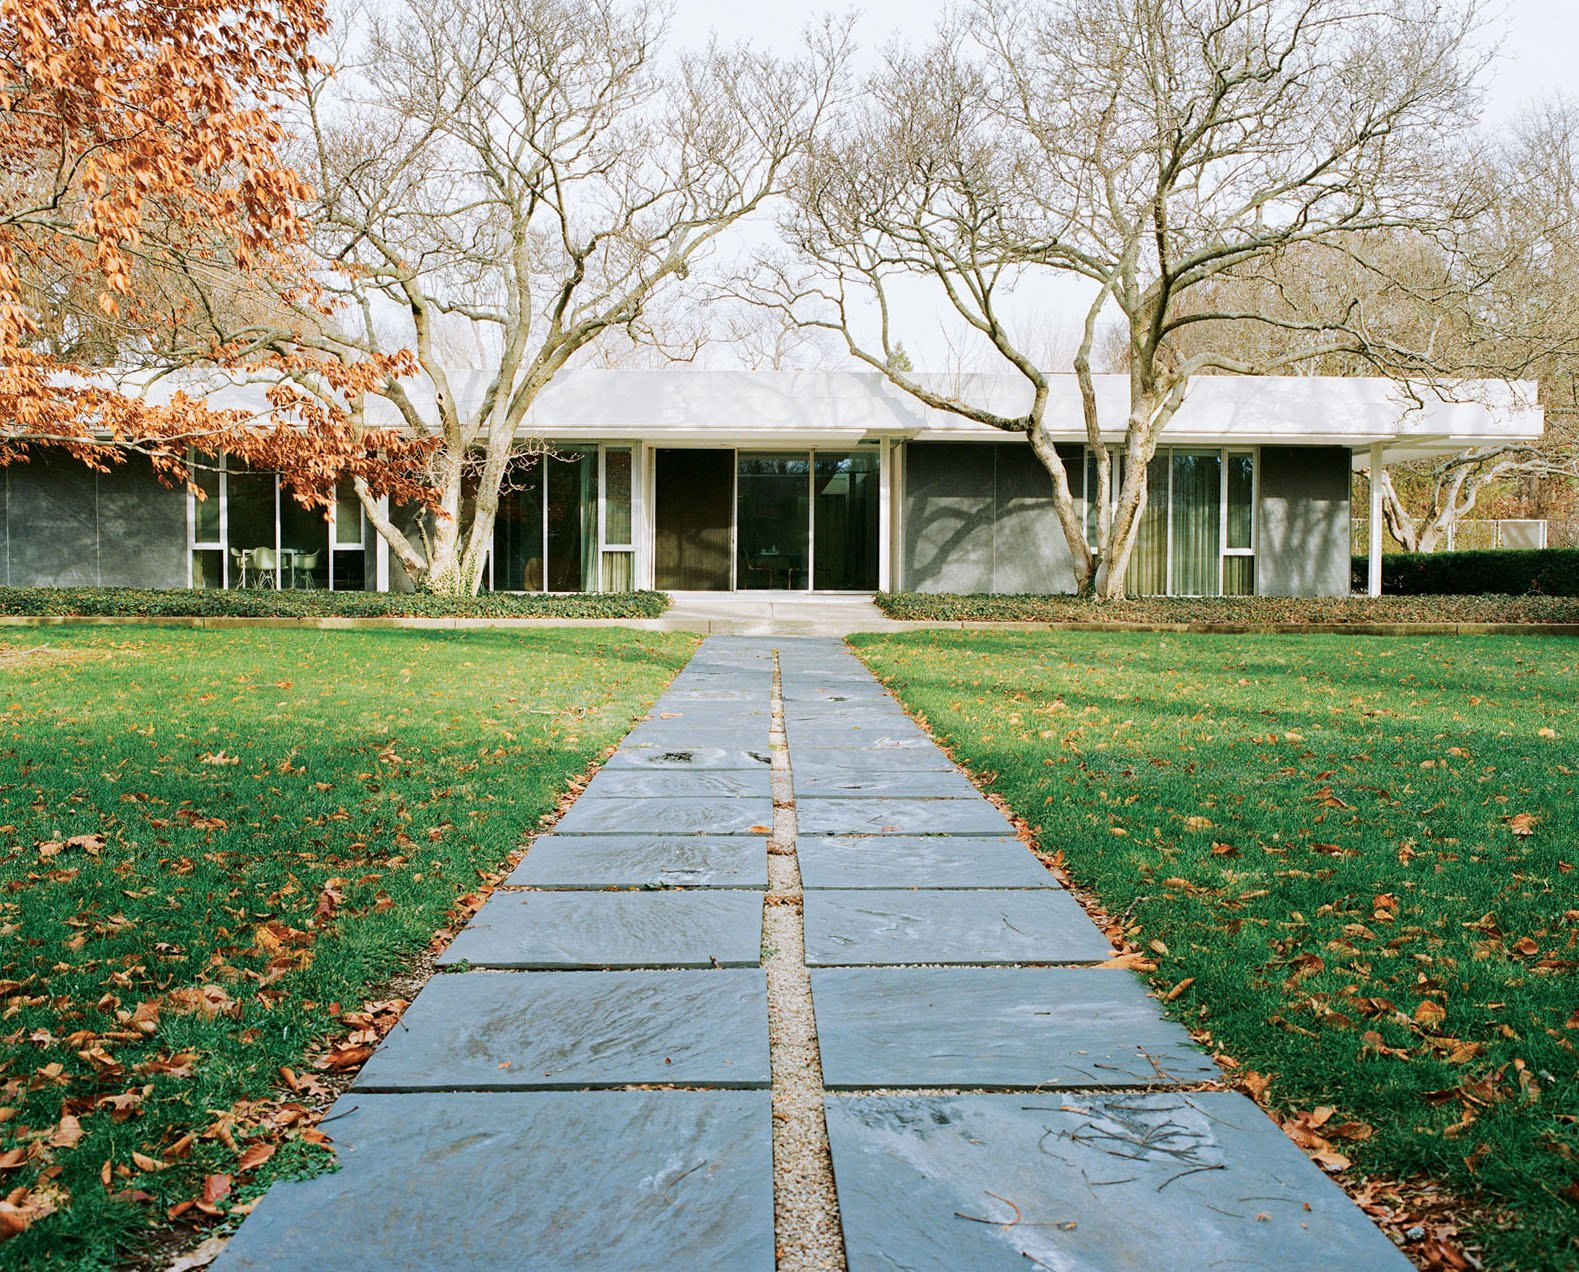 Eero Saarinen's legendary Miller House opened to the public in May 2011 for the first time. The pathway from the pool to the house is paved with the same slate that clads the exterior walls. Photo by Leslie Williamson.  20 Best Modern Homes from the Midwest by Erika Heet from Rooms With a View We Love, Especially in Fall